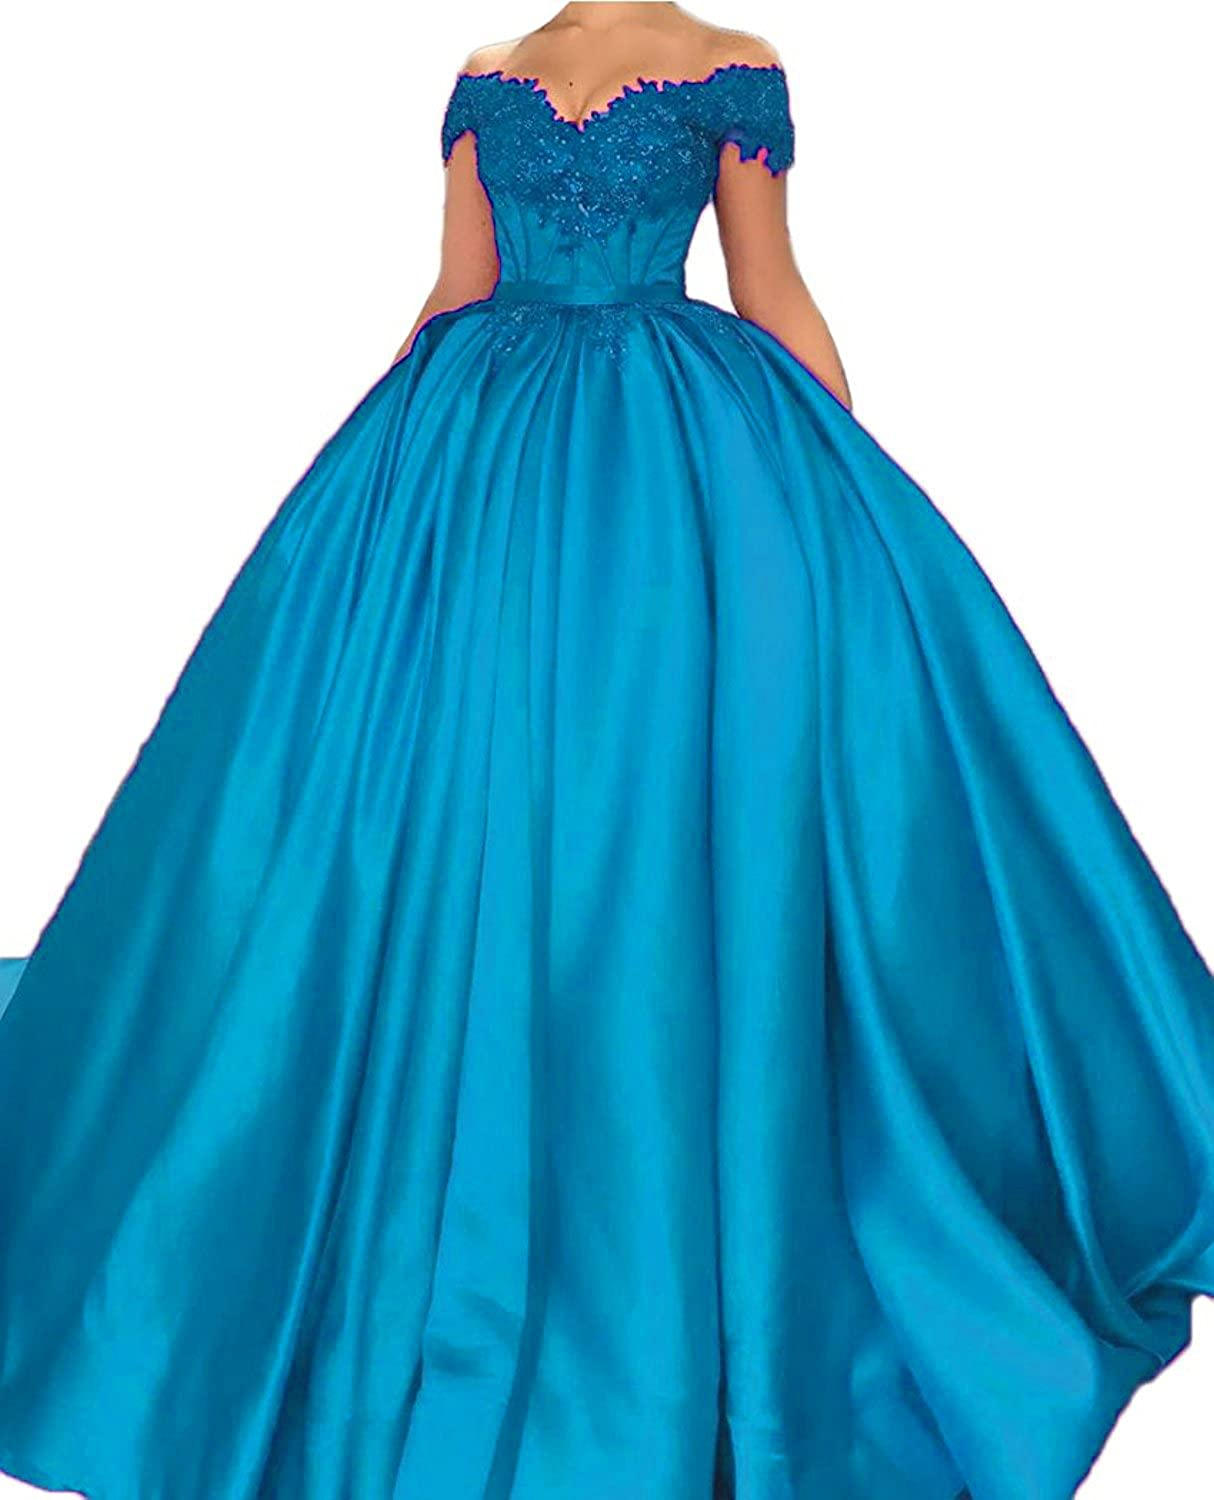 Women's Cap Sleeves Lace Beaded Evening Dress Satin Prom Ball Gown